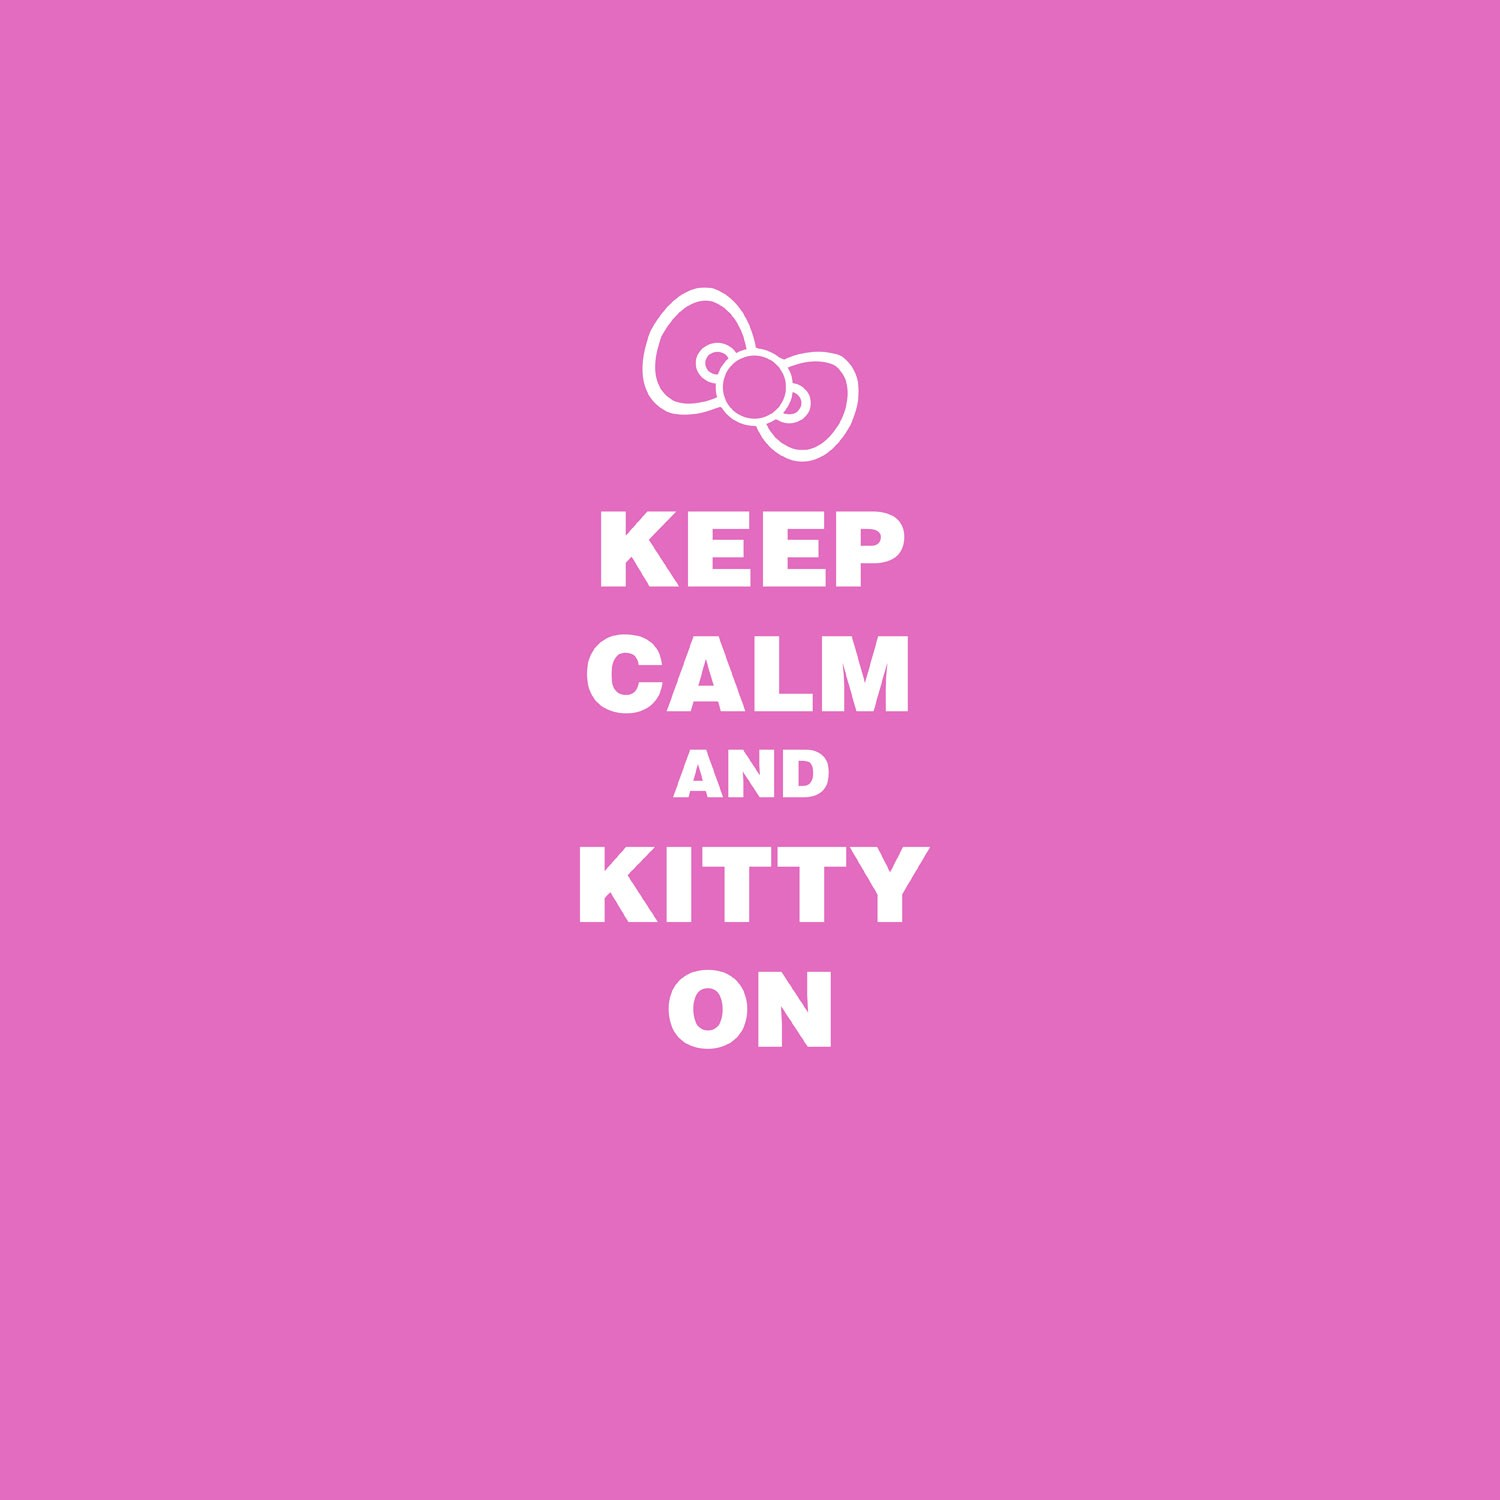 Keep Calm and Kitty On.